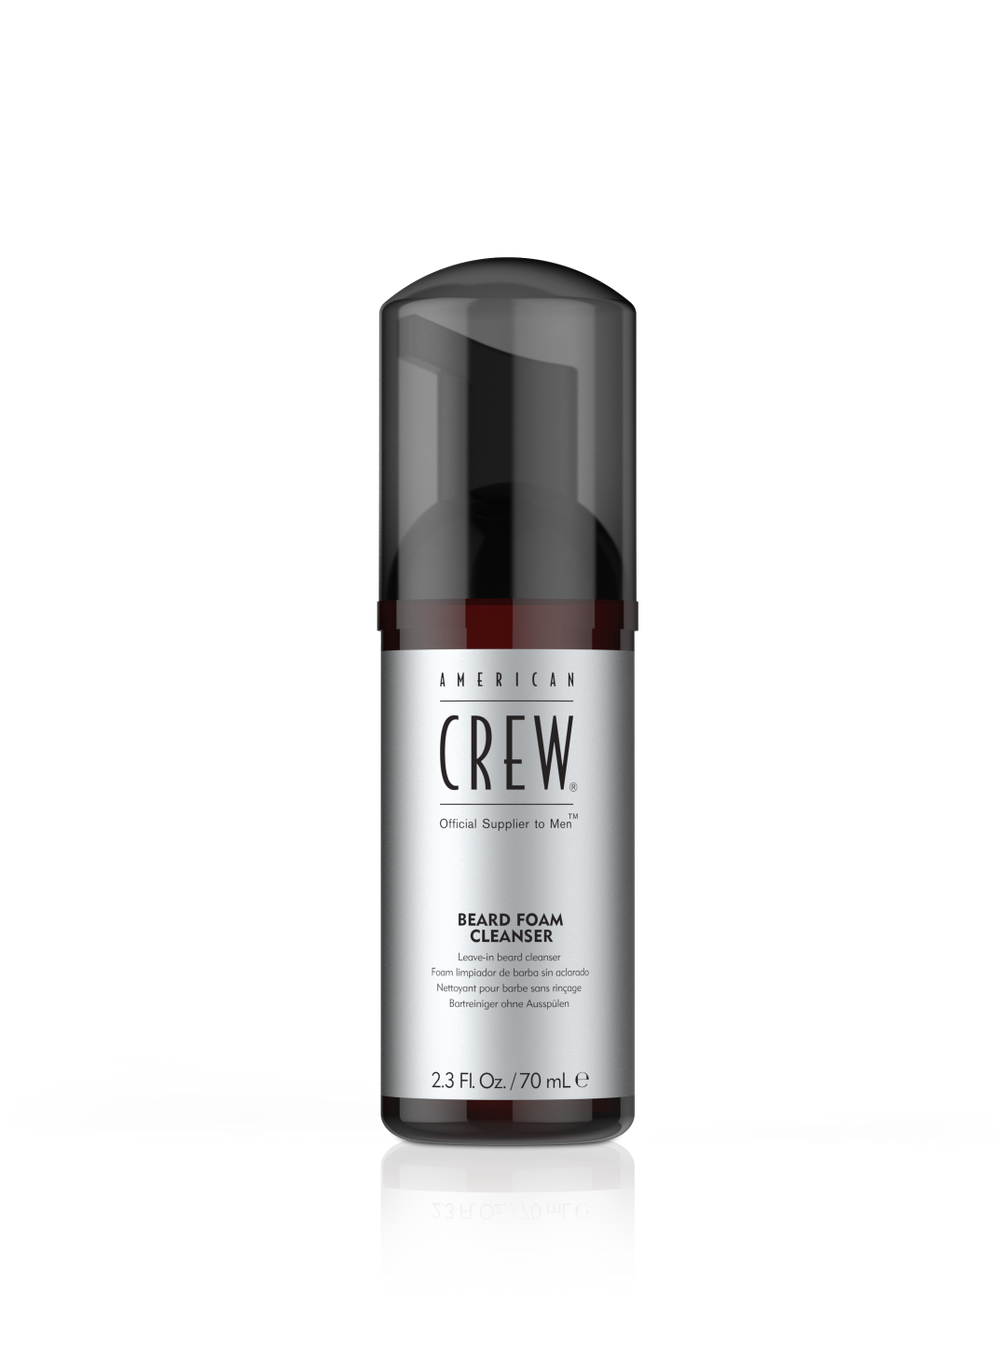 <p><strong>Cleanse: American Crew™ Beard Foam Cleanser</strong></p>